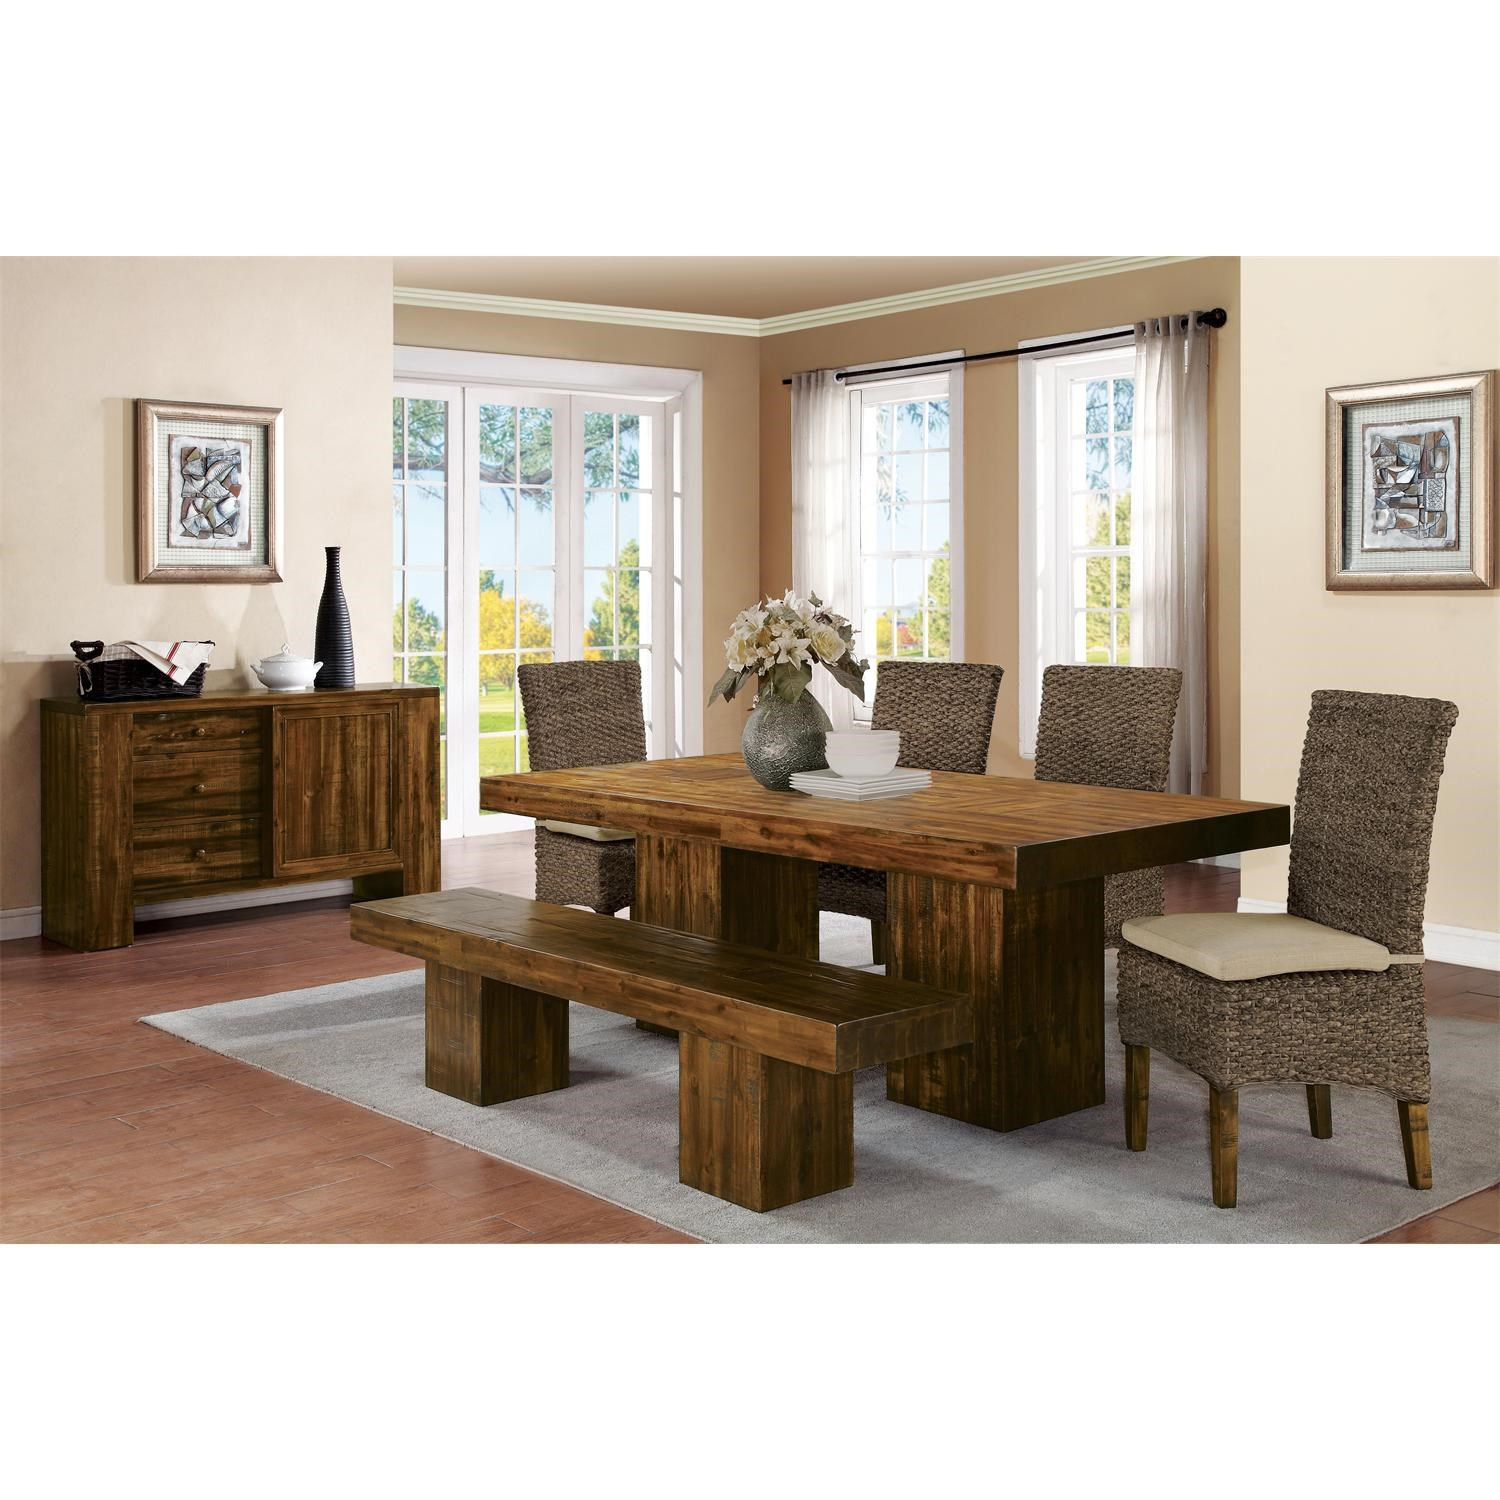 Dining room furniture manchester table thrilling